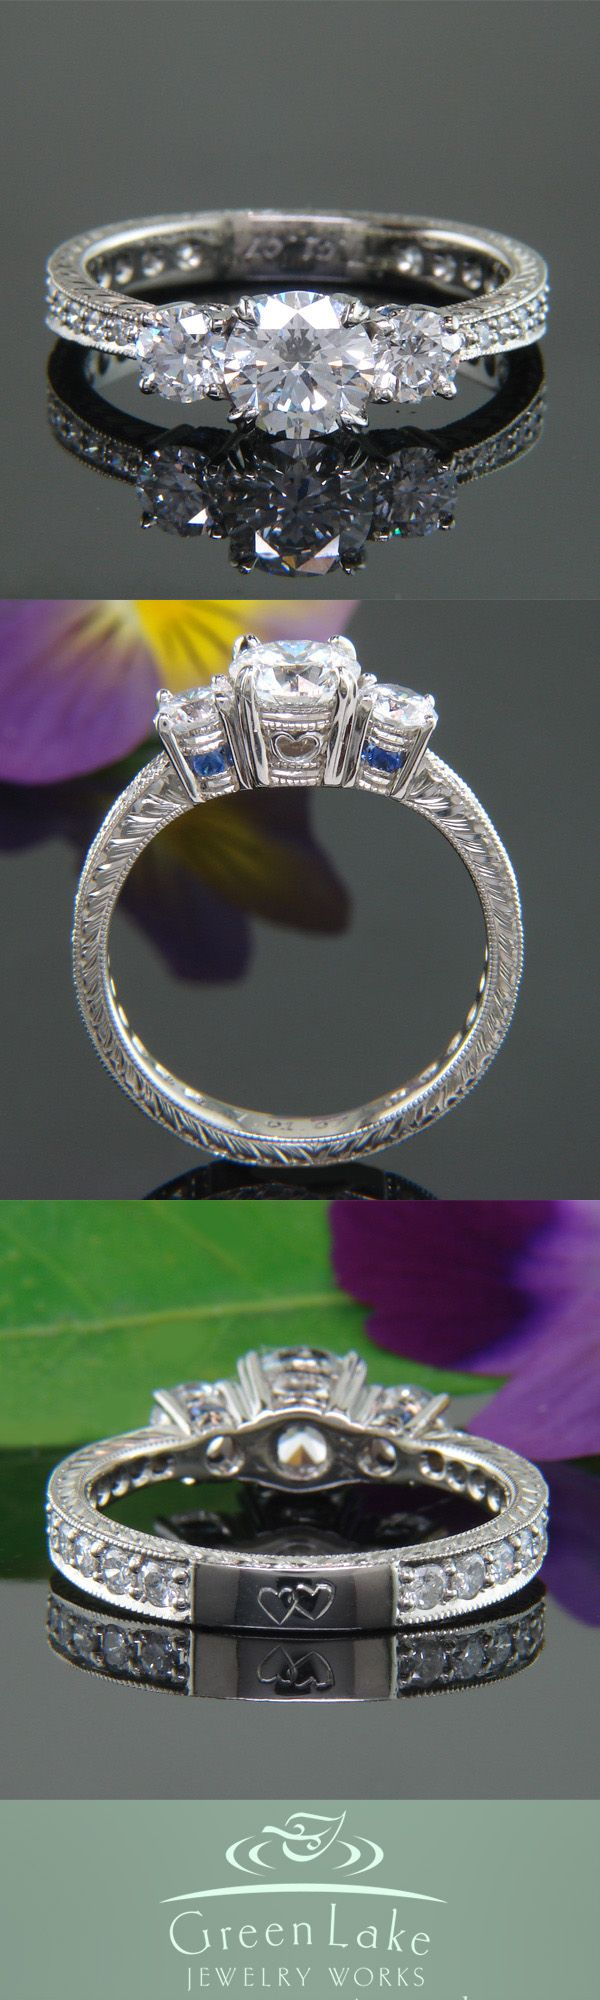 Threestone Engagement Ring With Engraving And Accent Sapphires